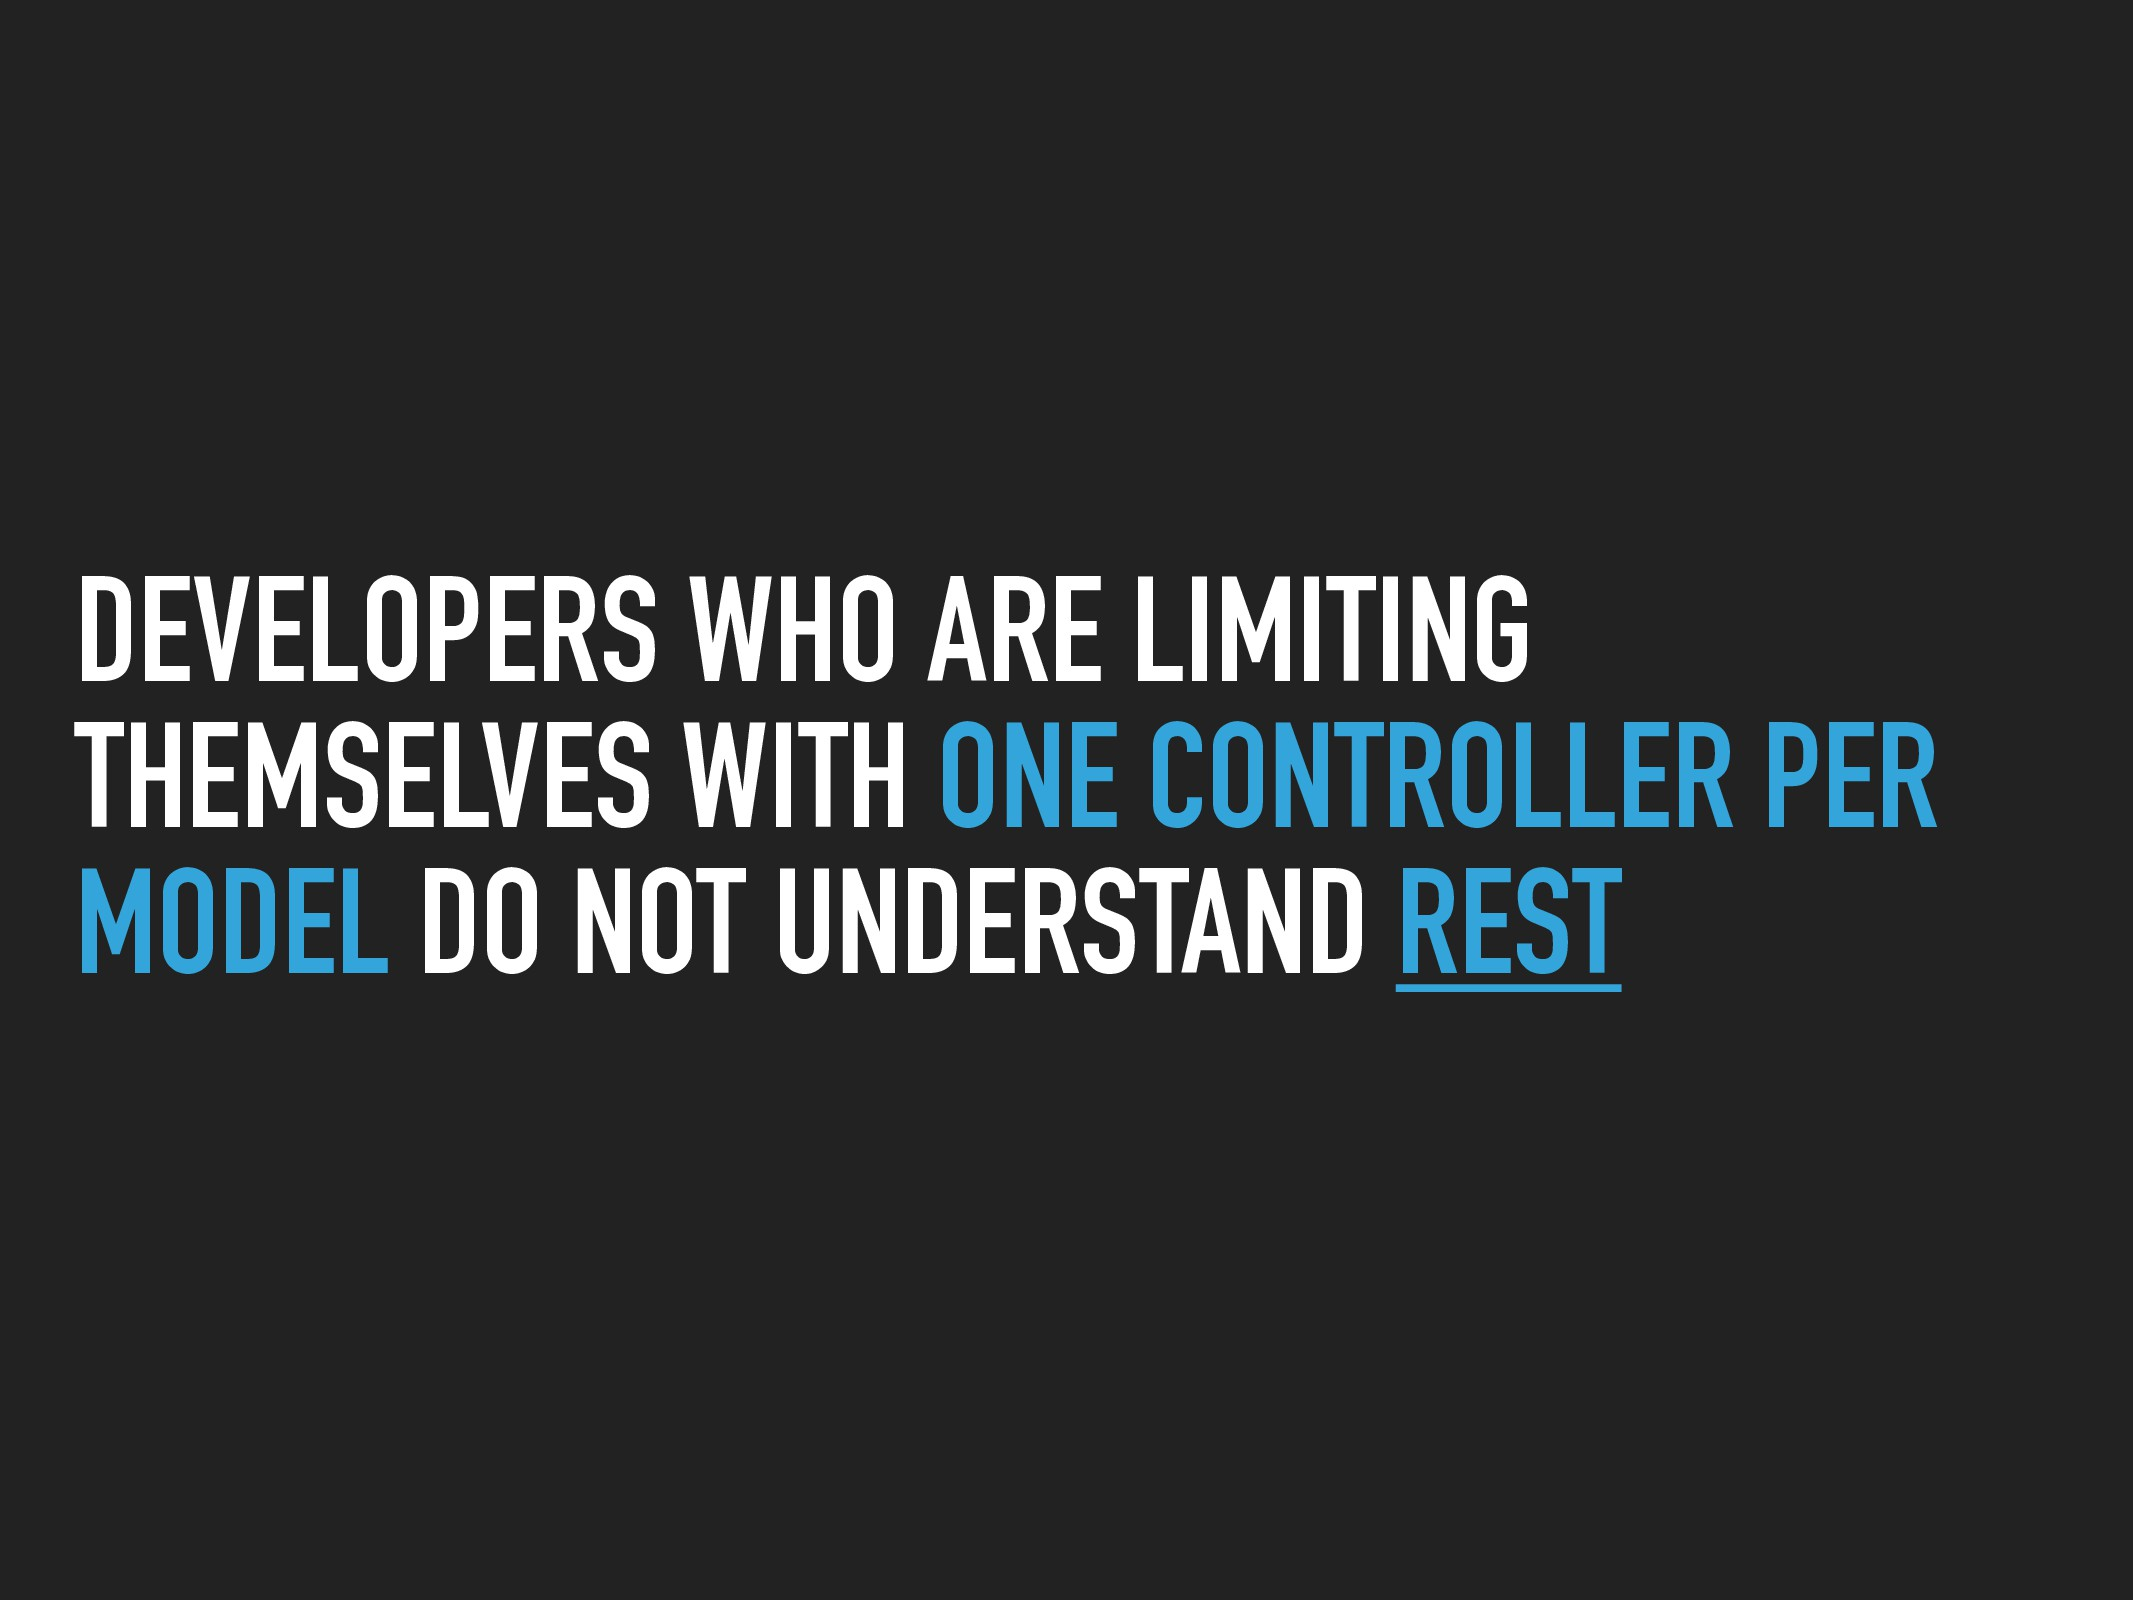 DEVELOPERS WHO ARE LIMITING THEMSELVES WITH ONE...